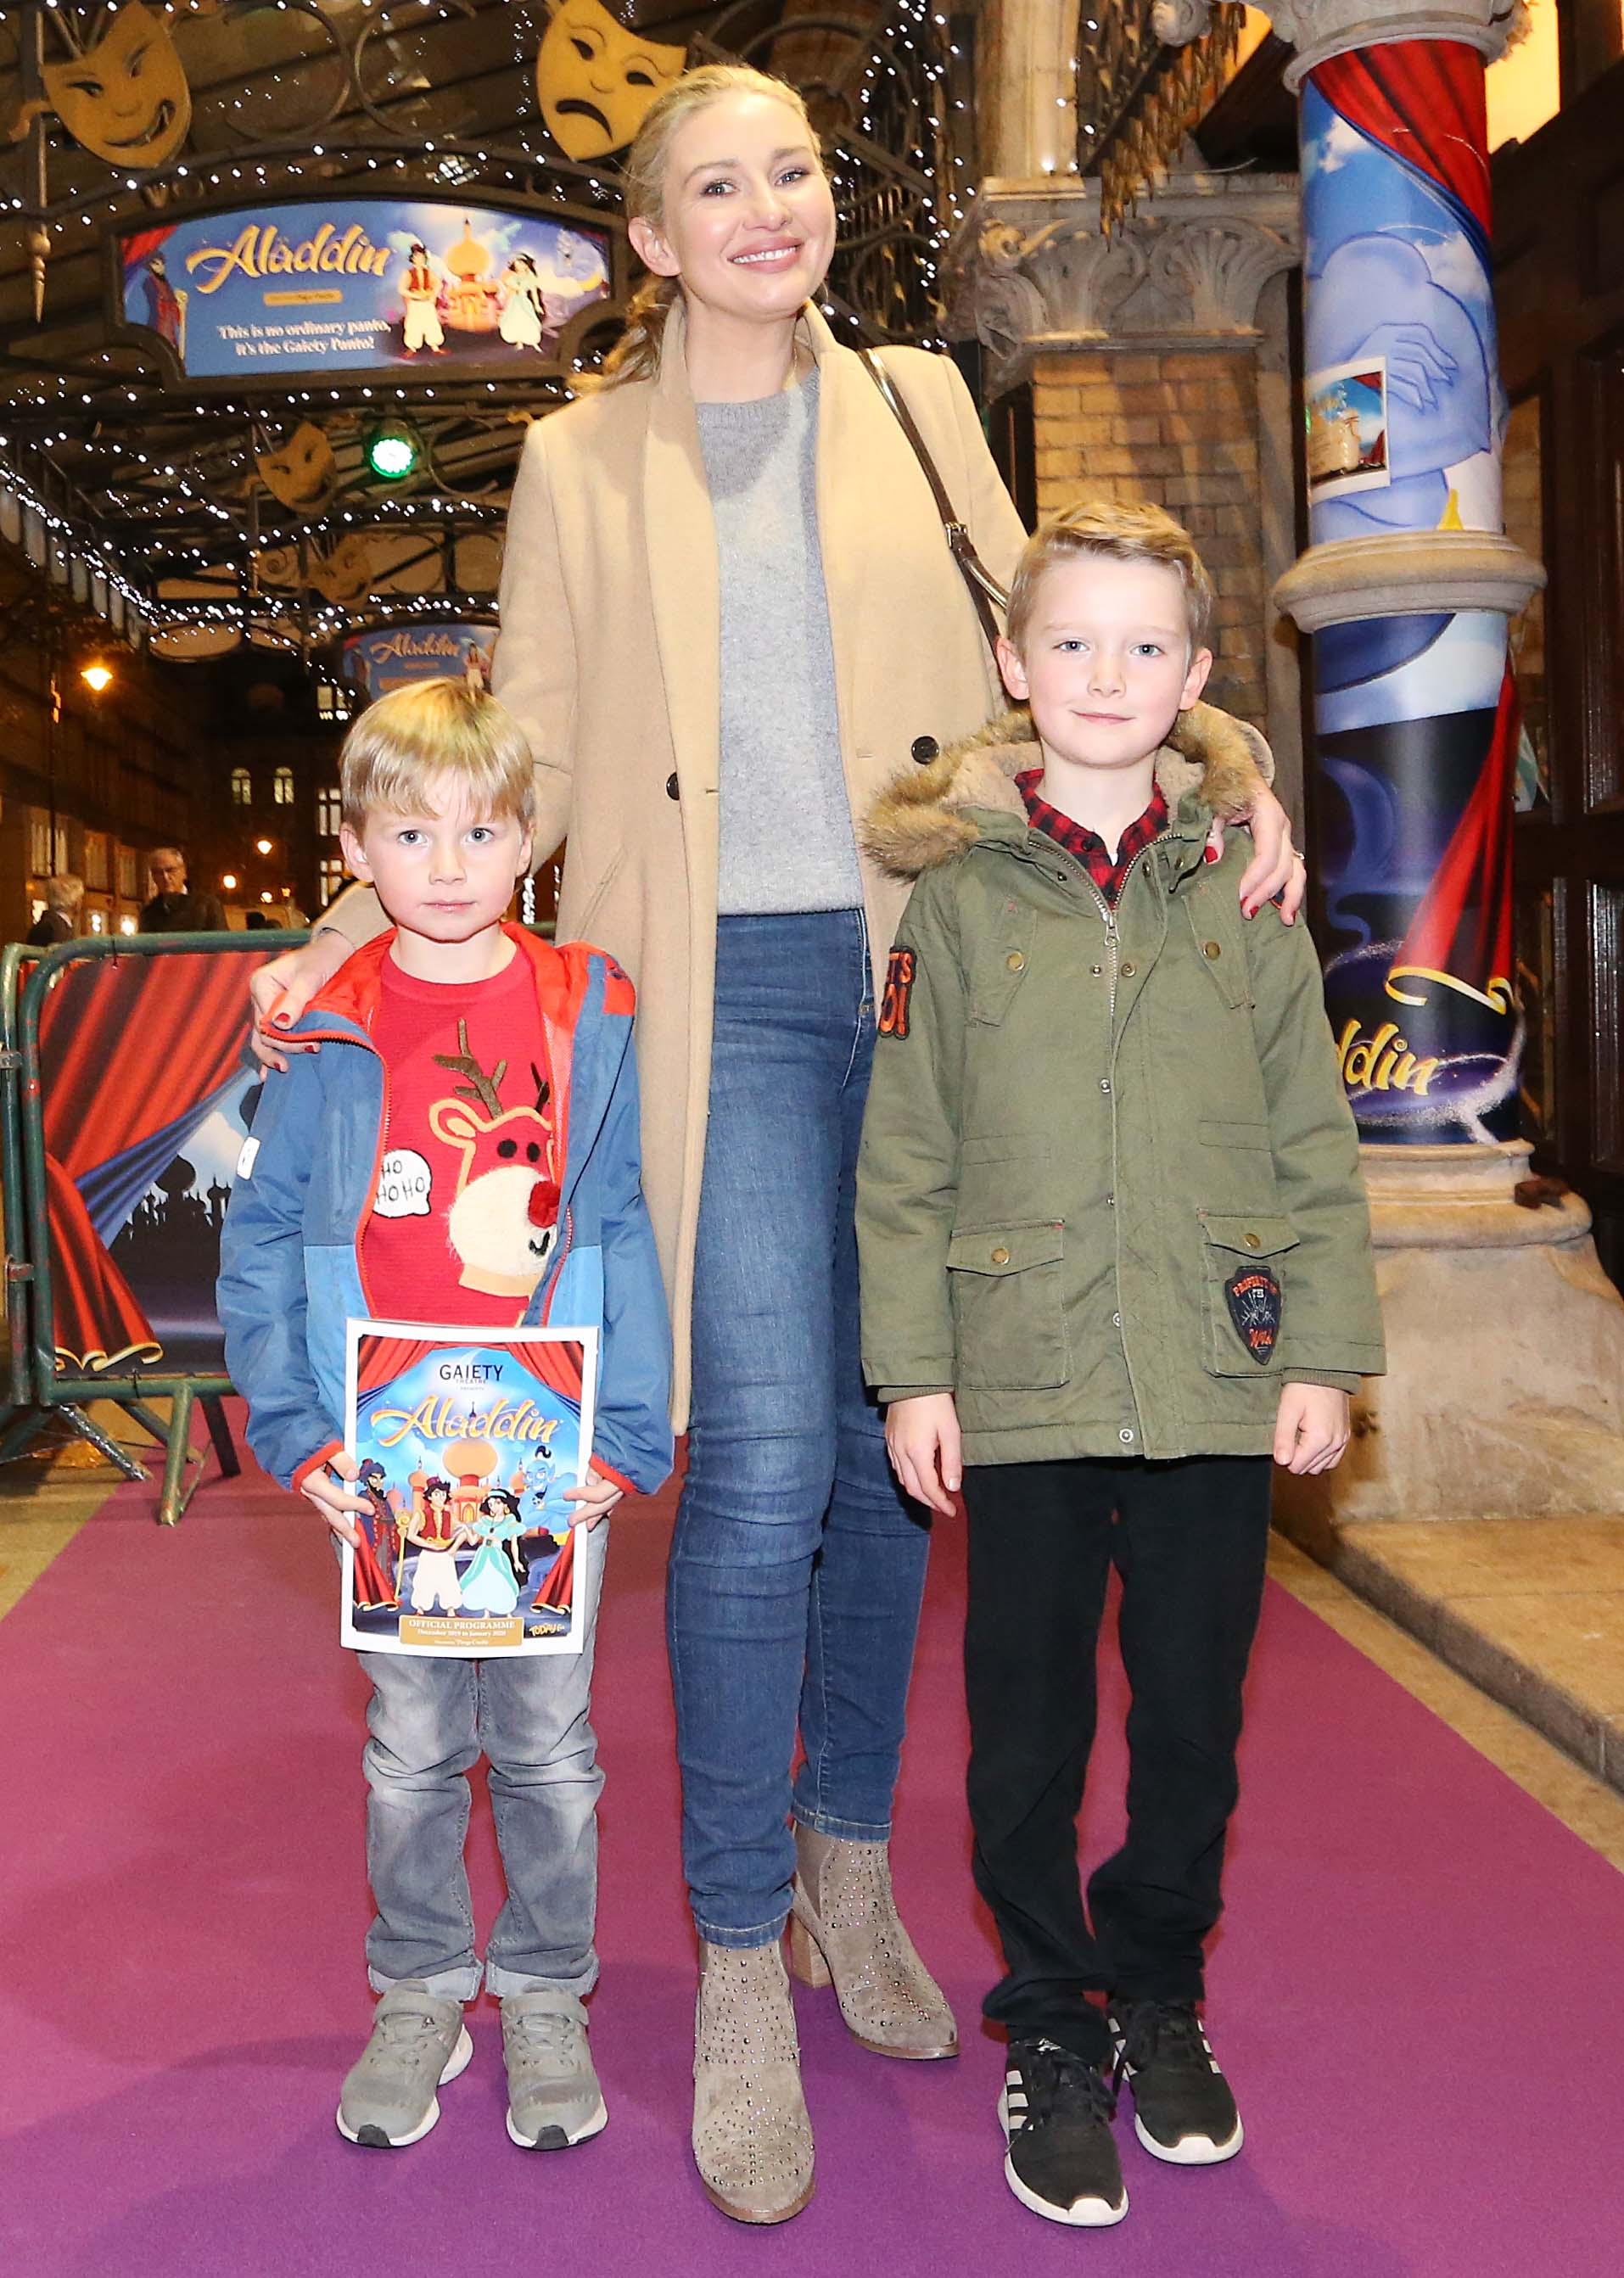 Pictured is Anna Daly with Euan and James Ward at the official opening of the Gaiety Theatre Christmas Panto, Aladdin. Aladdin opens at the Gaiety Theatre Sunday 24th November. Photo: Sasko Lazarov/Photocall Ireland